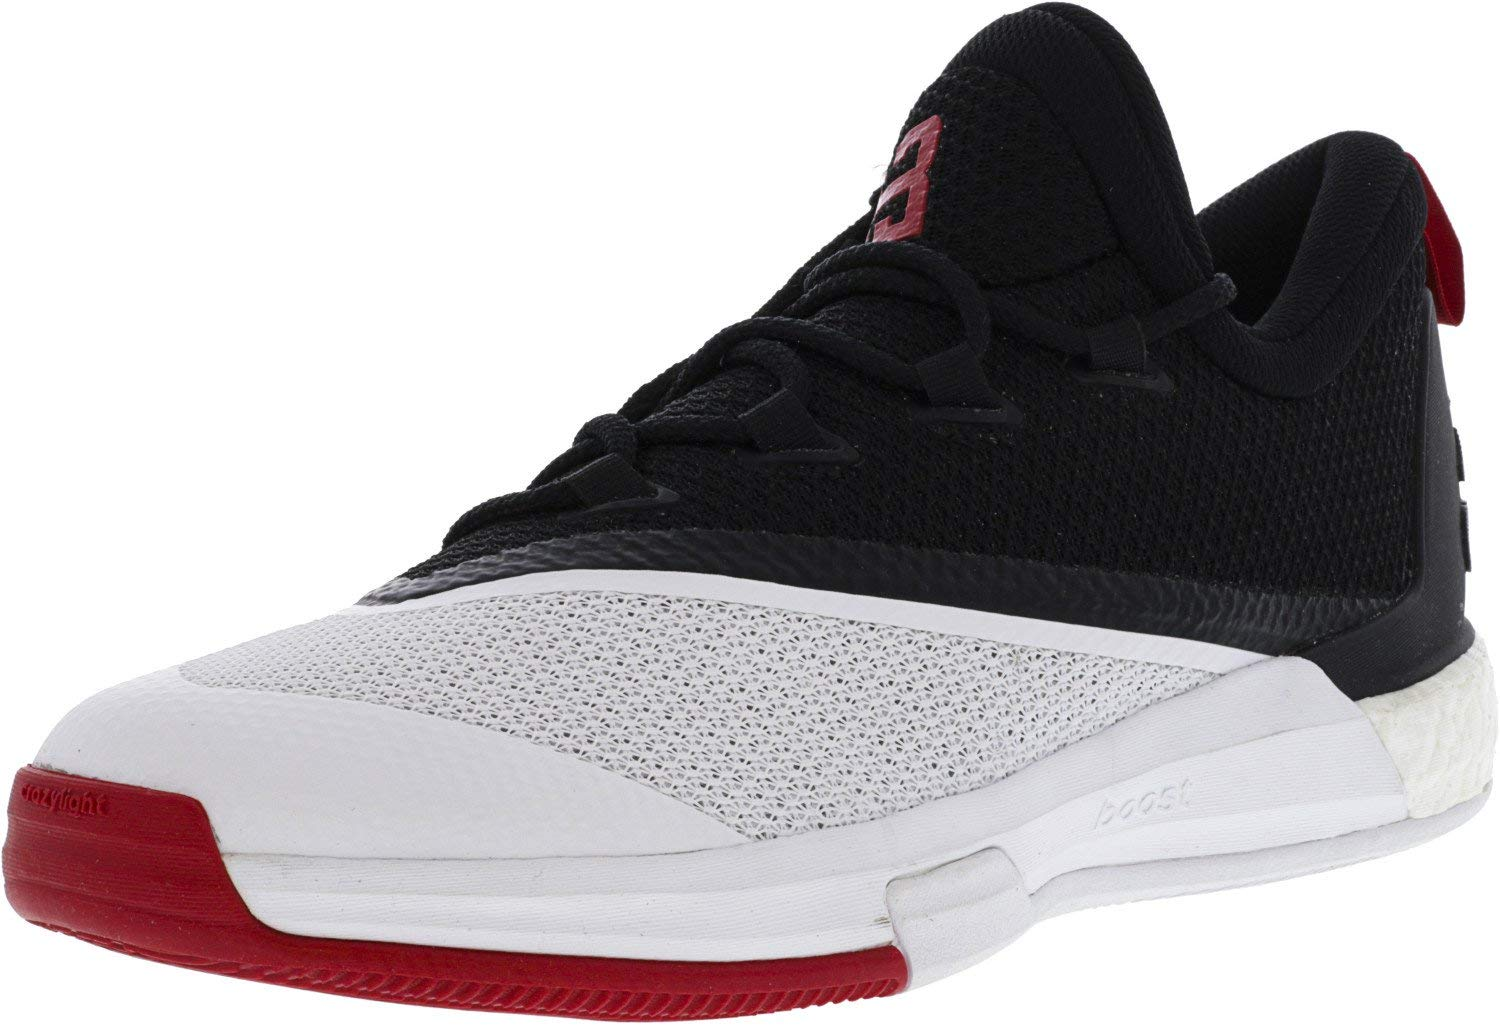 adidas Crazylight Boost 2.5